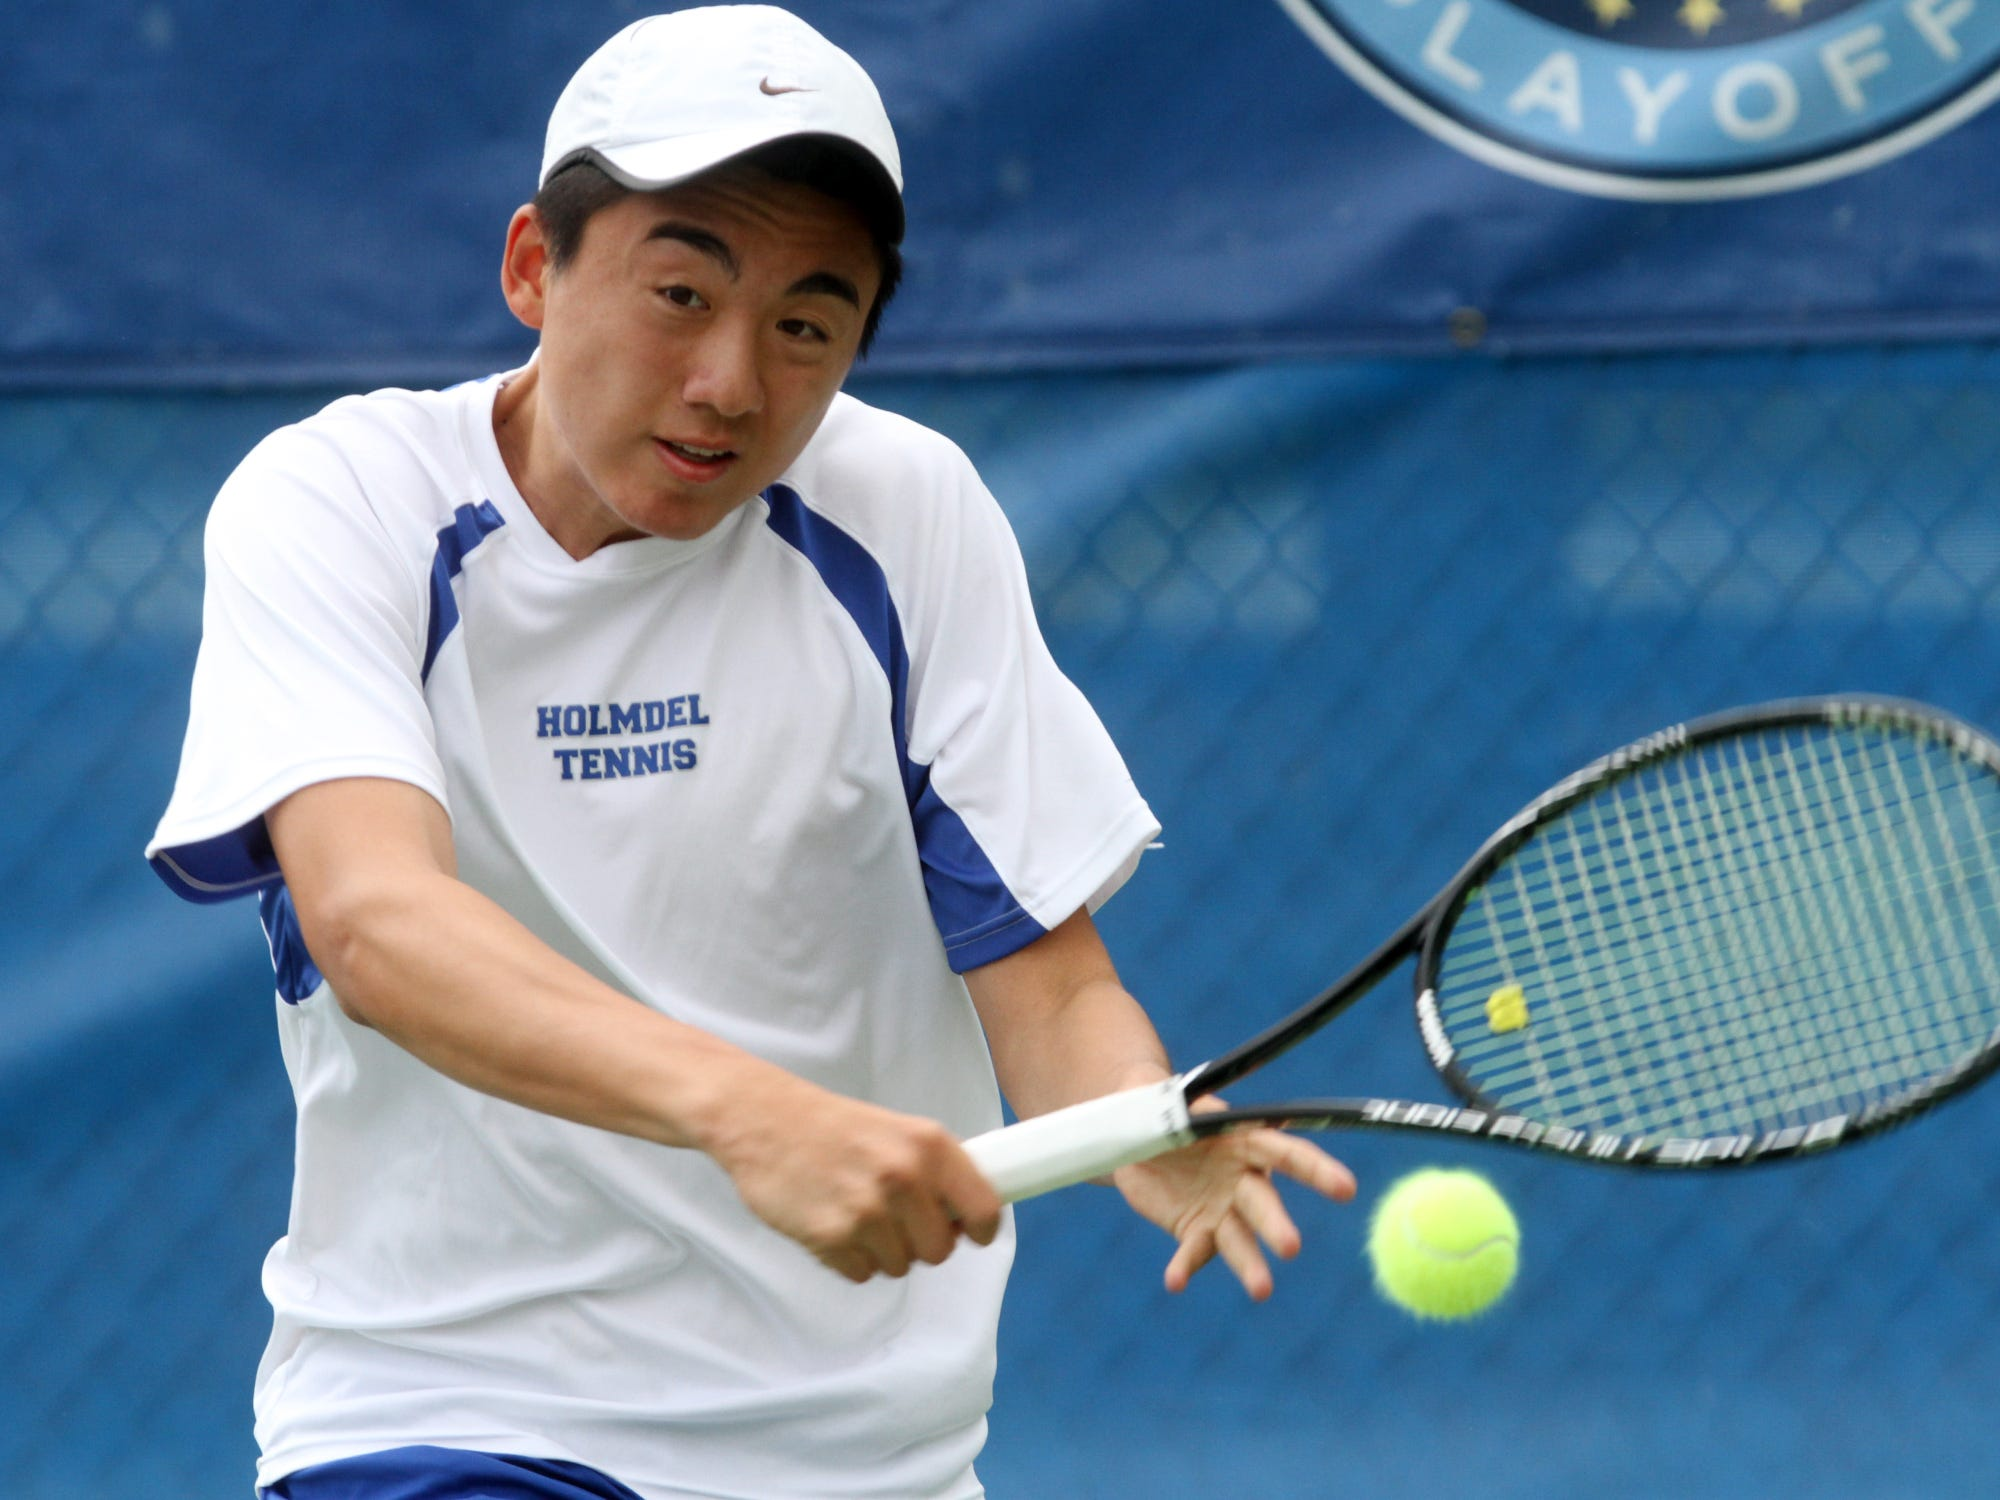 asbury senior singles Hilton head island, sc – concordia wisconsin began its spring break trip on a sour note with a pair of setbacks on tuesday, dropping a 7-2 decision to asbury.